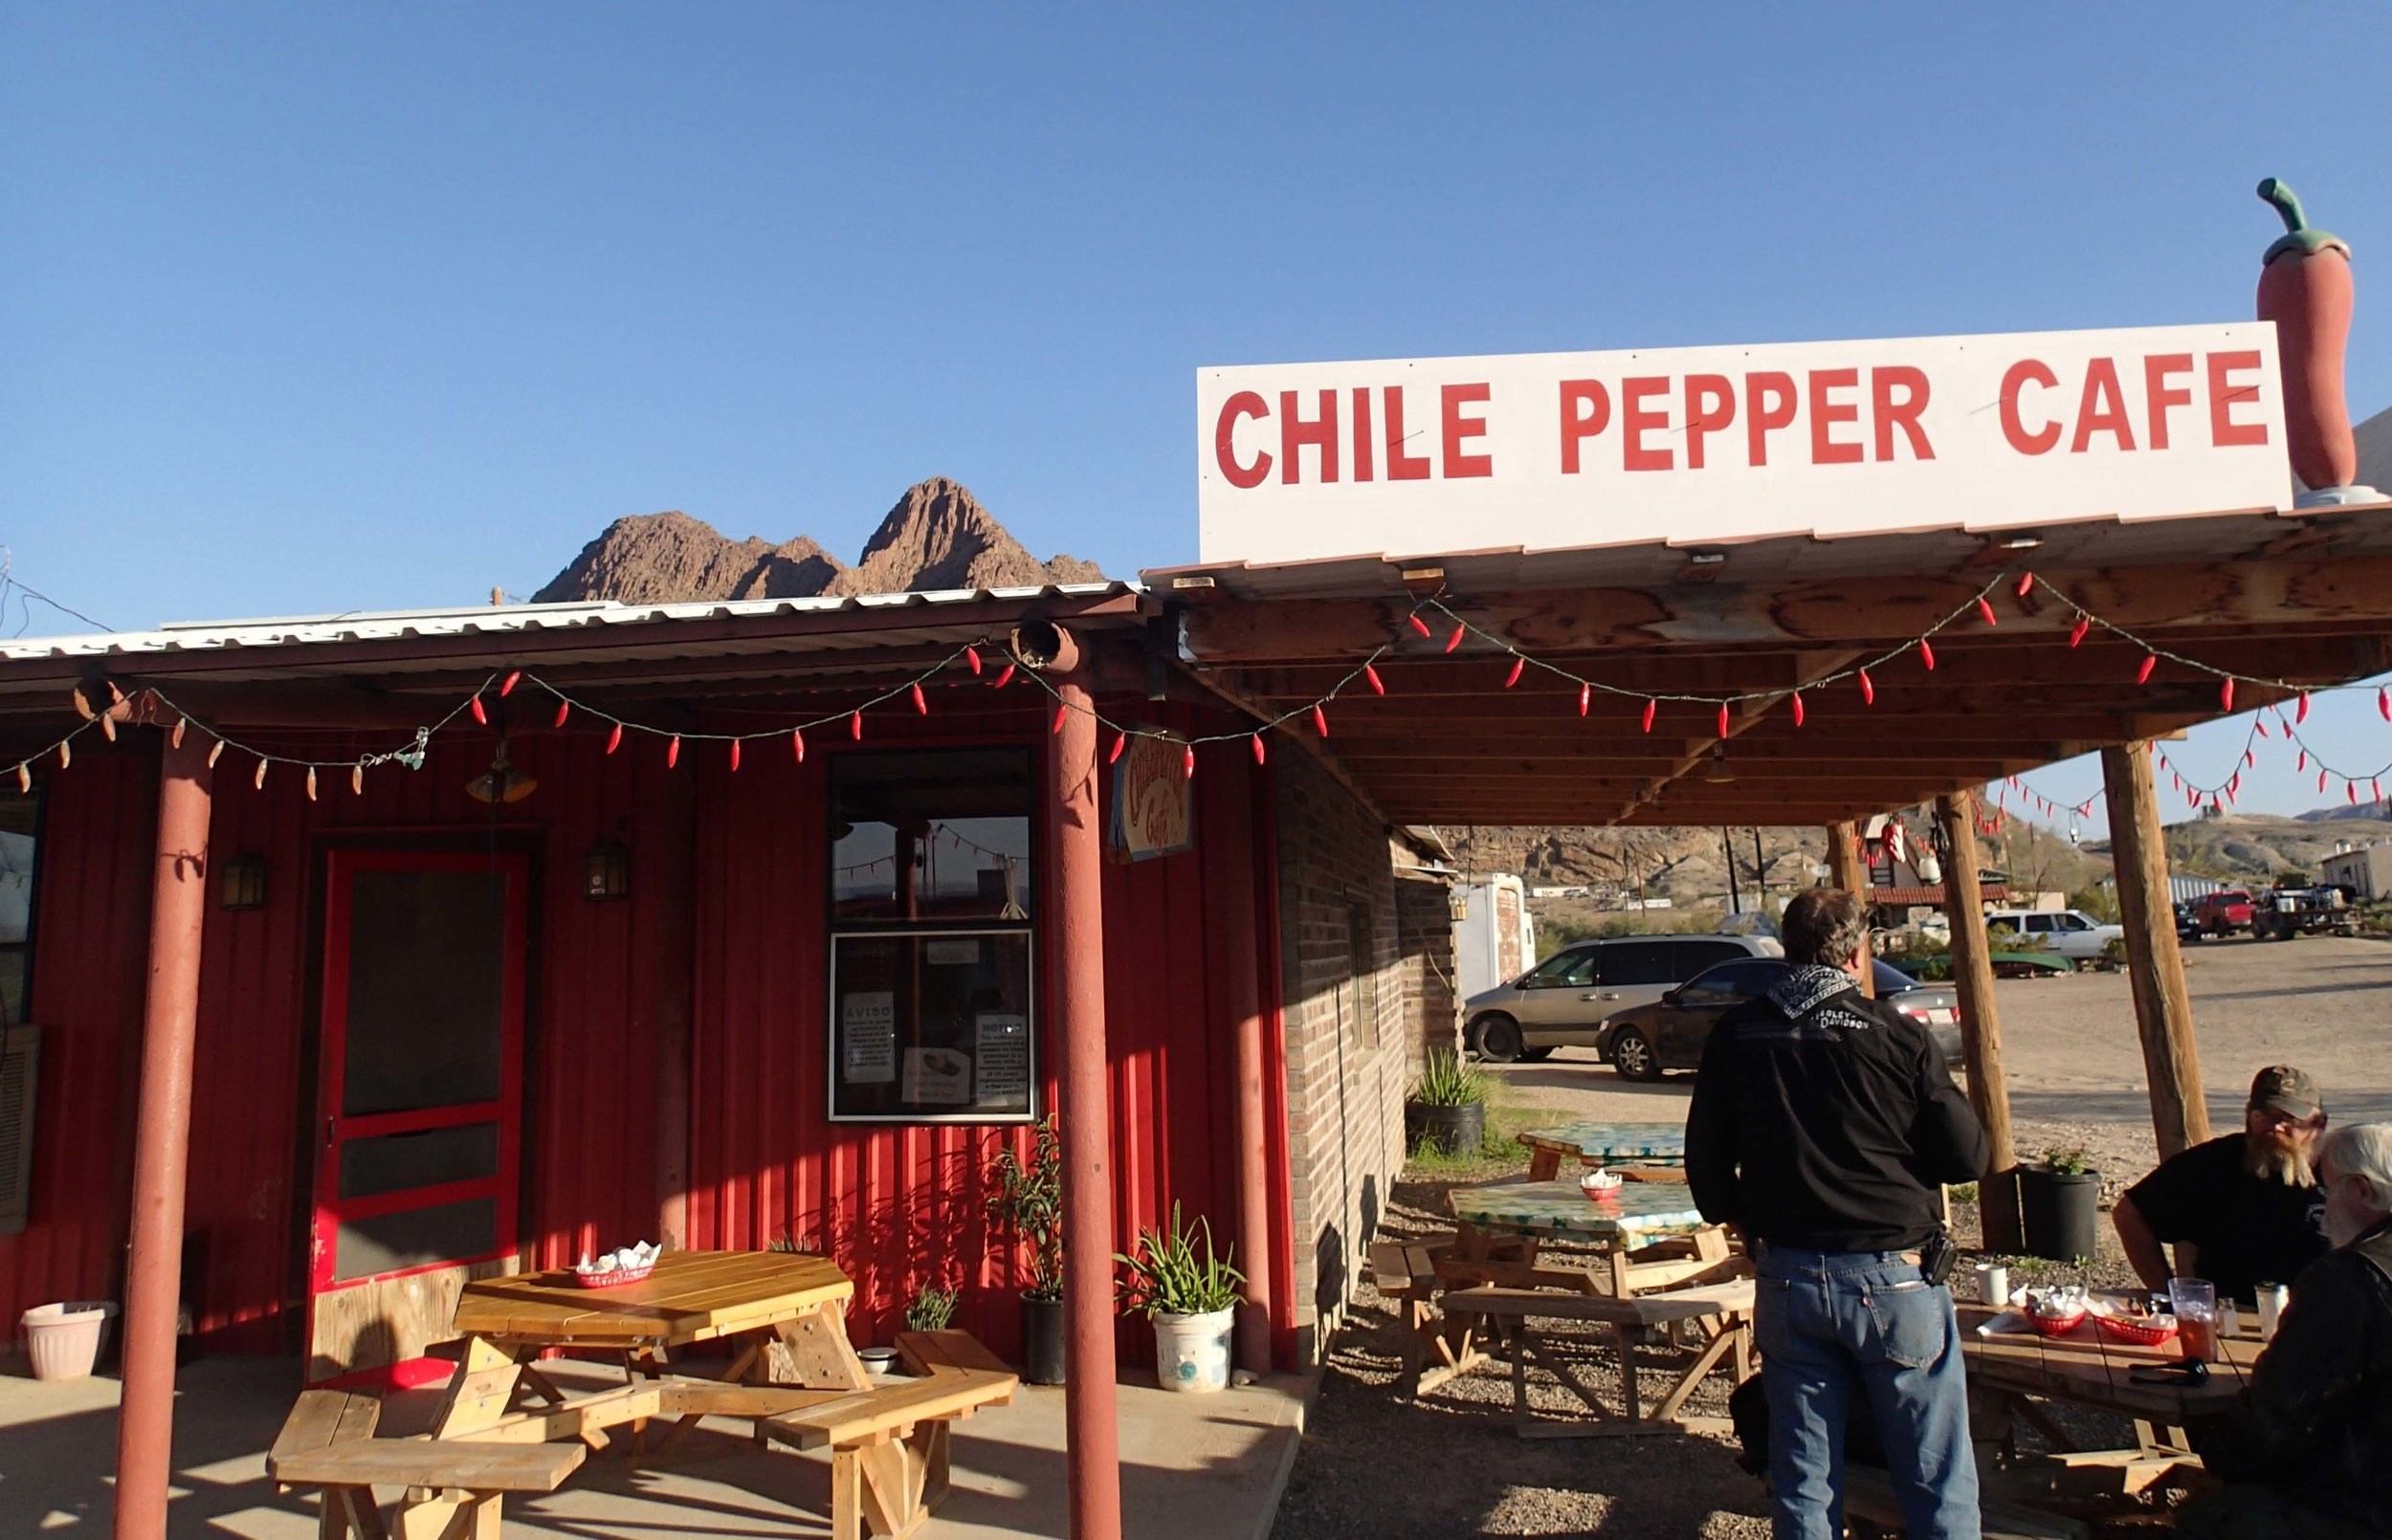 Chile Pepper Cafe.jpg